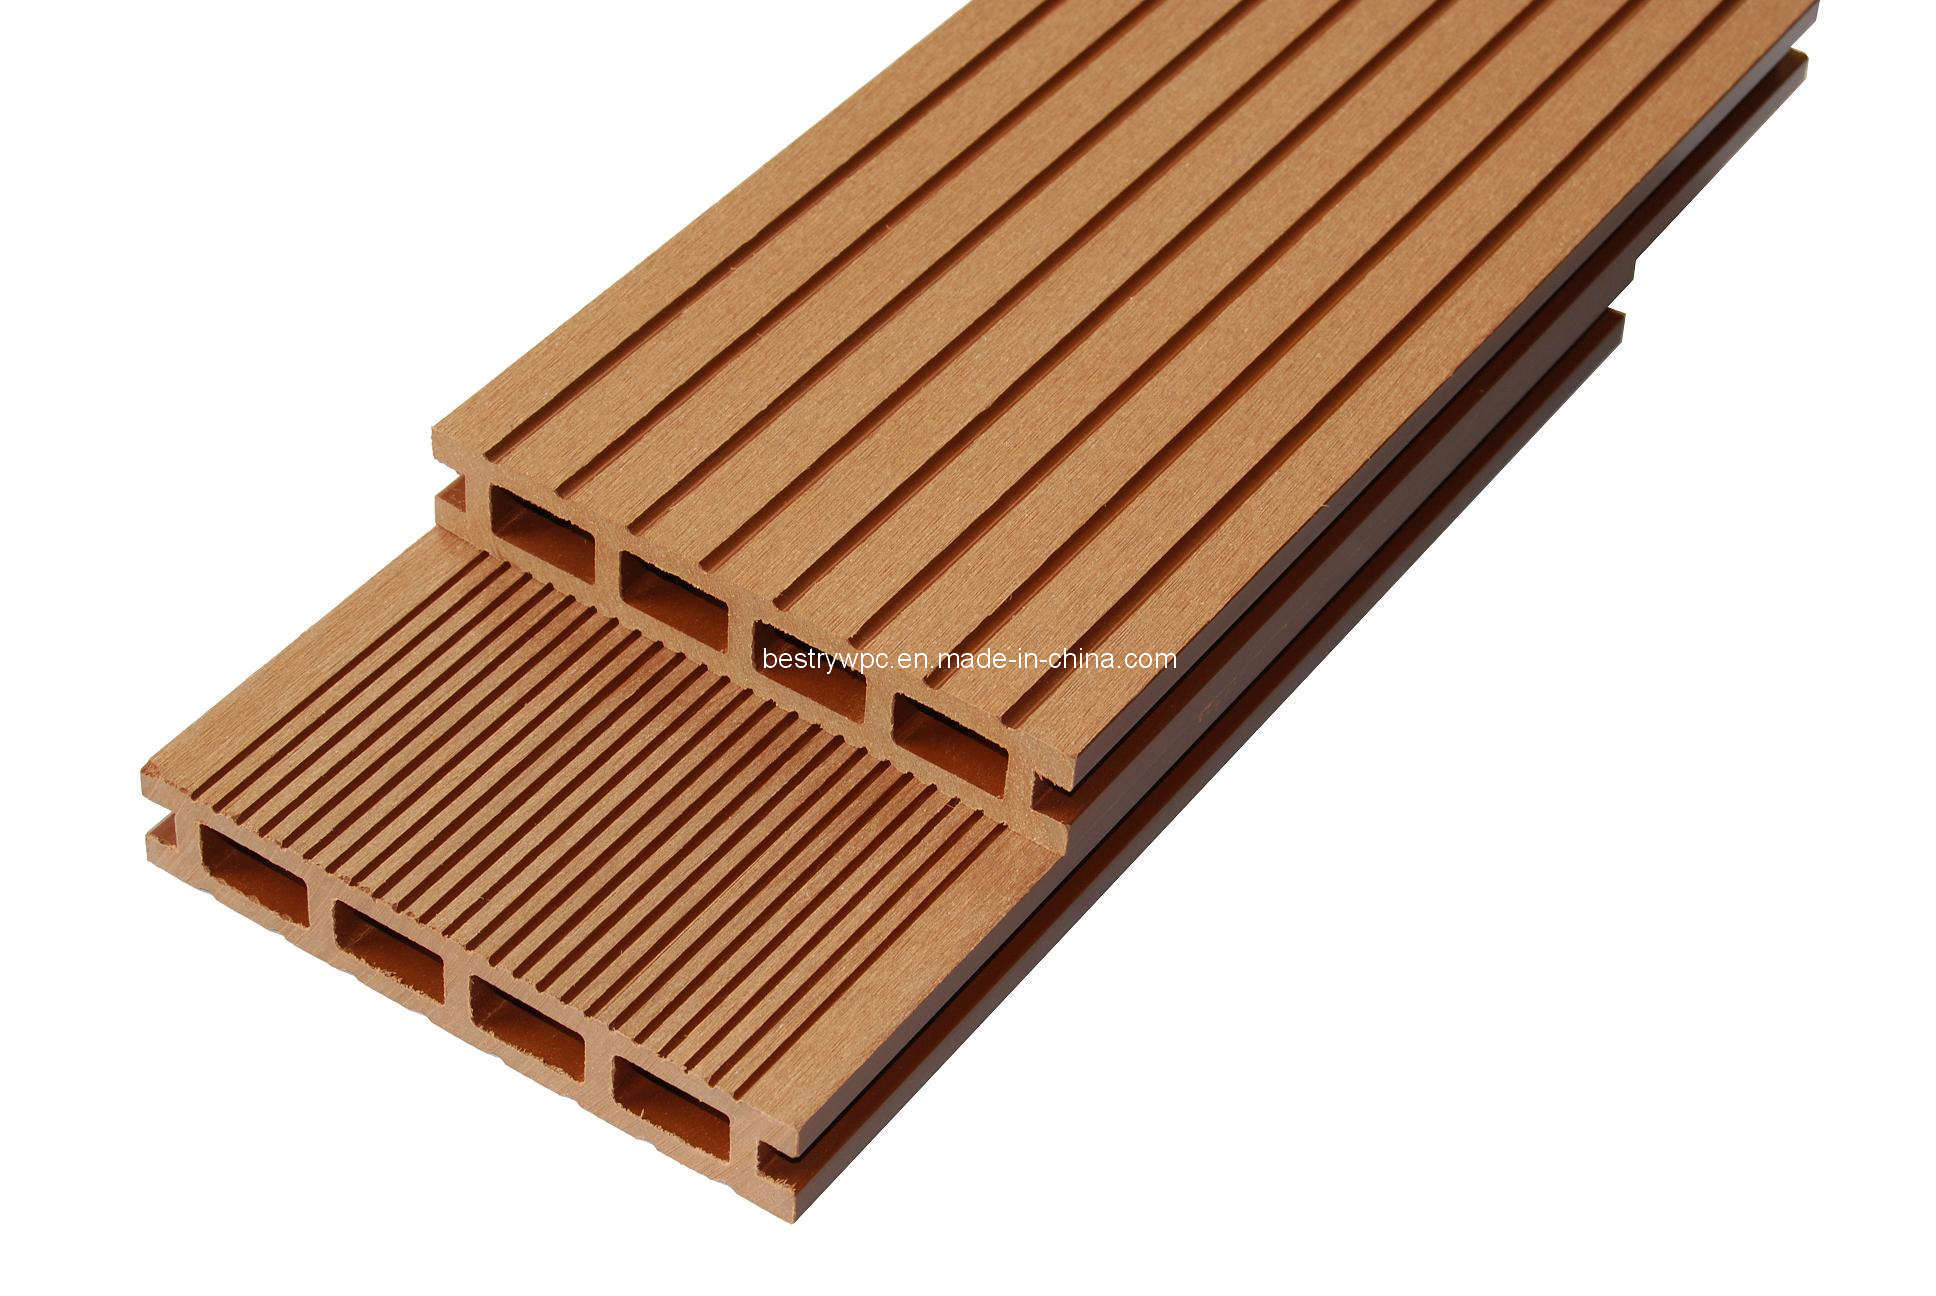 Wood Plastic Composite Decking : China wood plastic composite floorwpc decking bd h b